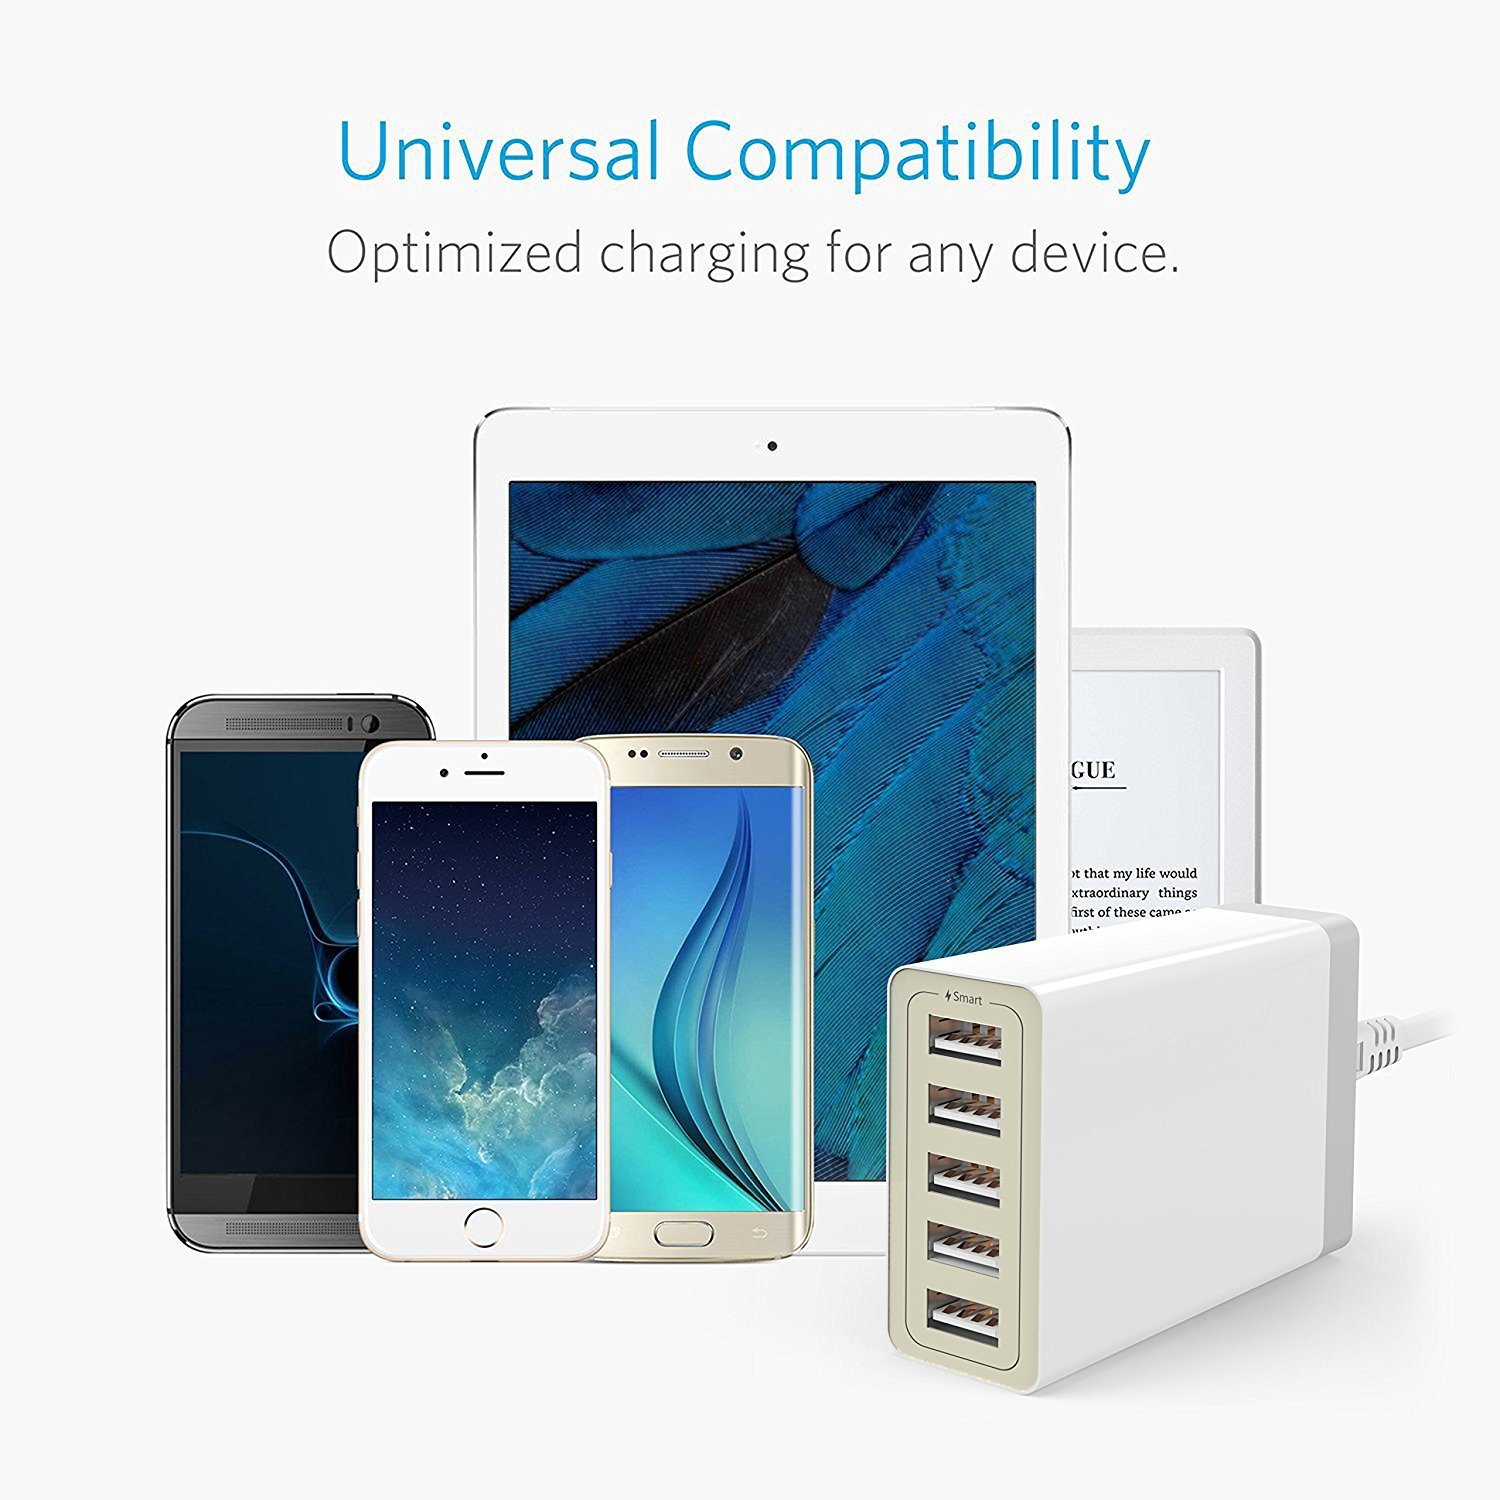 5-Port Charging Station, USB Charger for iPhone X/8/7/6s/Plus, iPad Pro/Air 2/mini/iPod, Galaxy S7/S6/Edge/Plus, Note 5/4, LG, Nexus, HTC and More